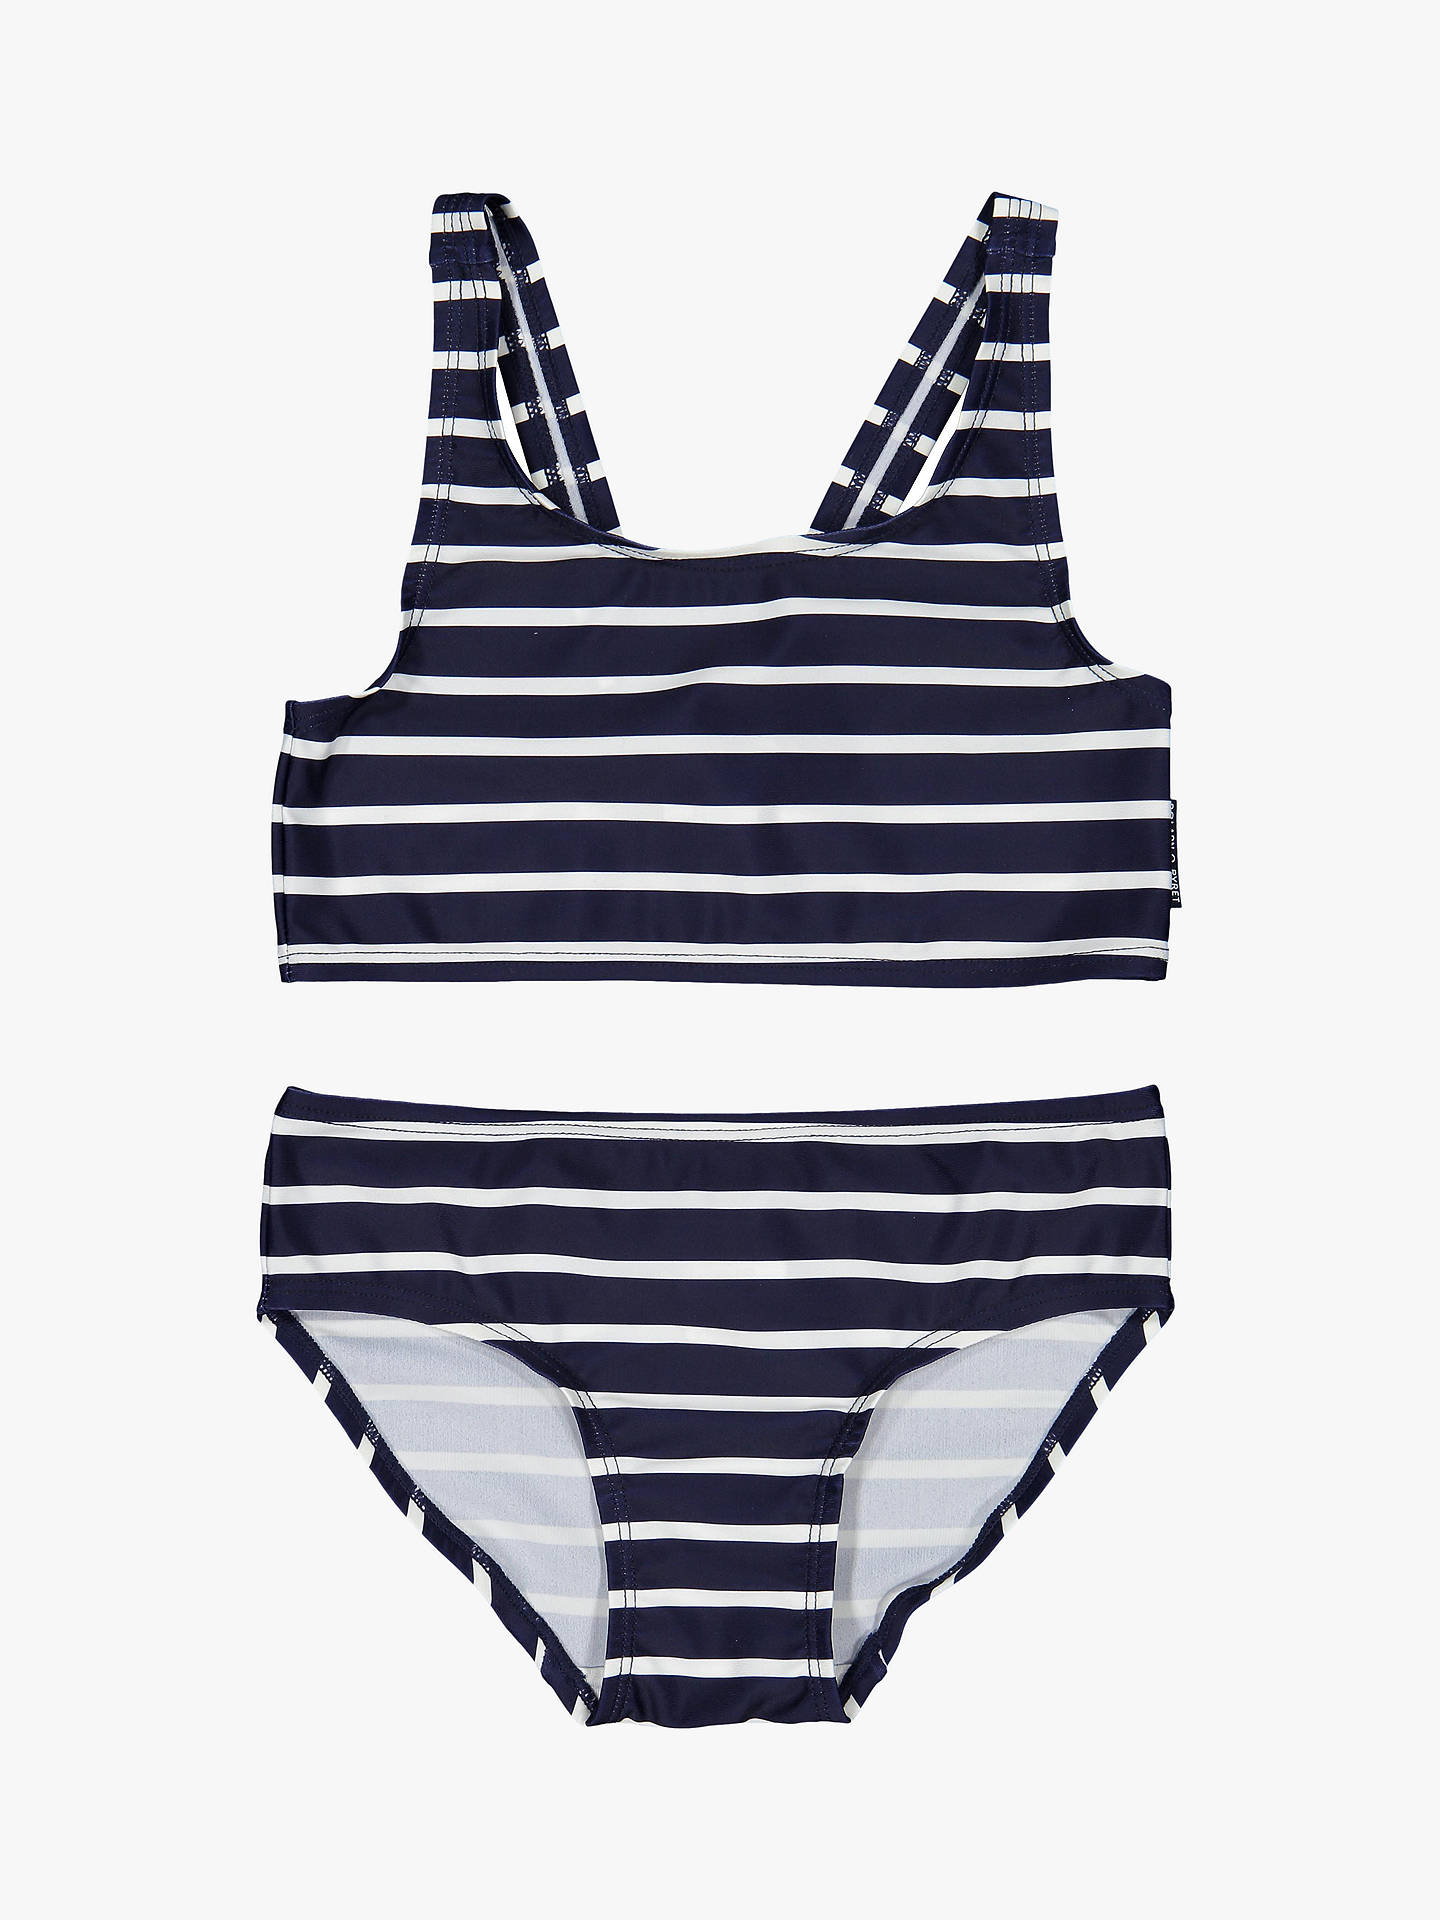 03cac7679ab Buy Polarn O. Pyret Children's Stripe Bikini Set, Blue/White, 1- ...